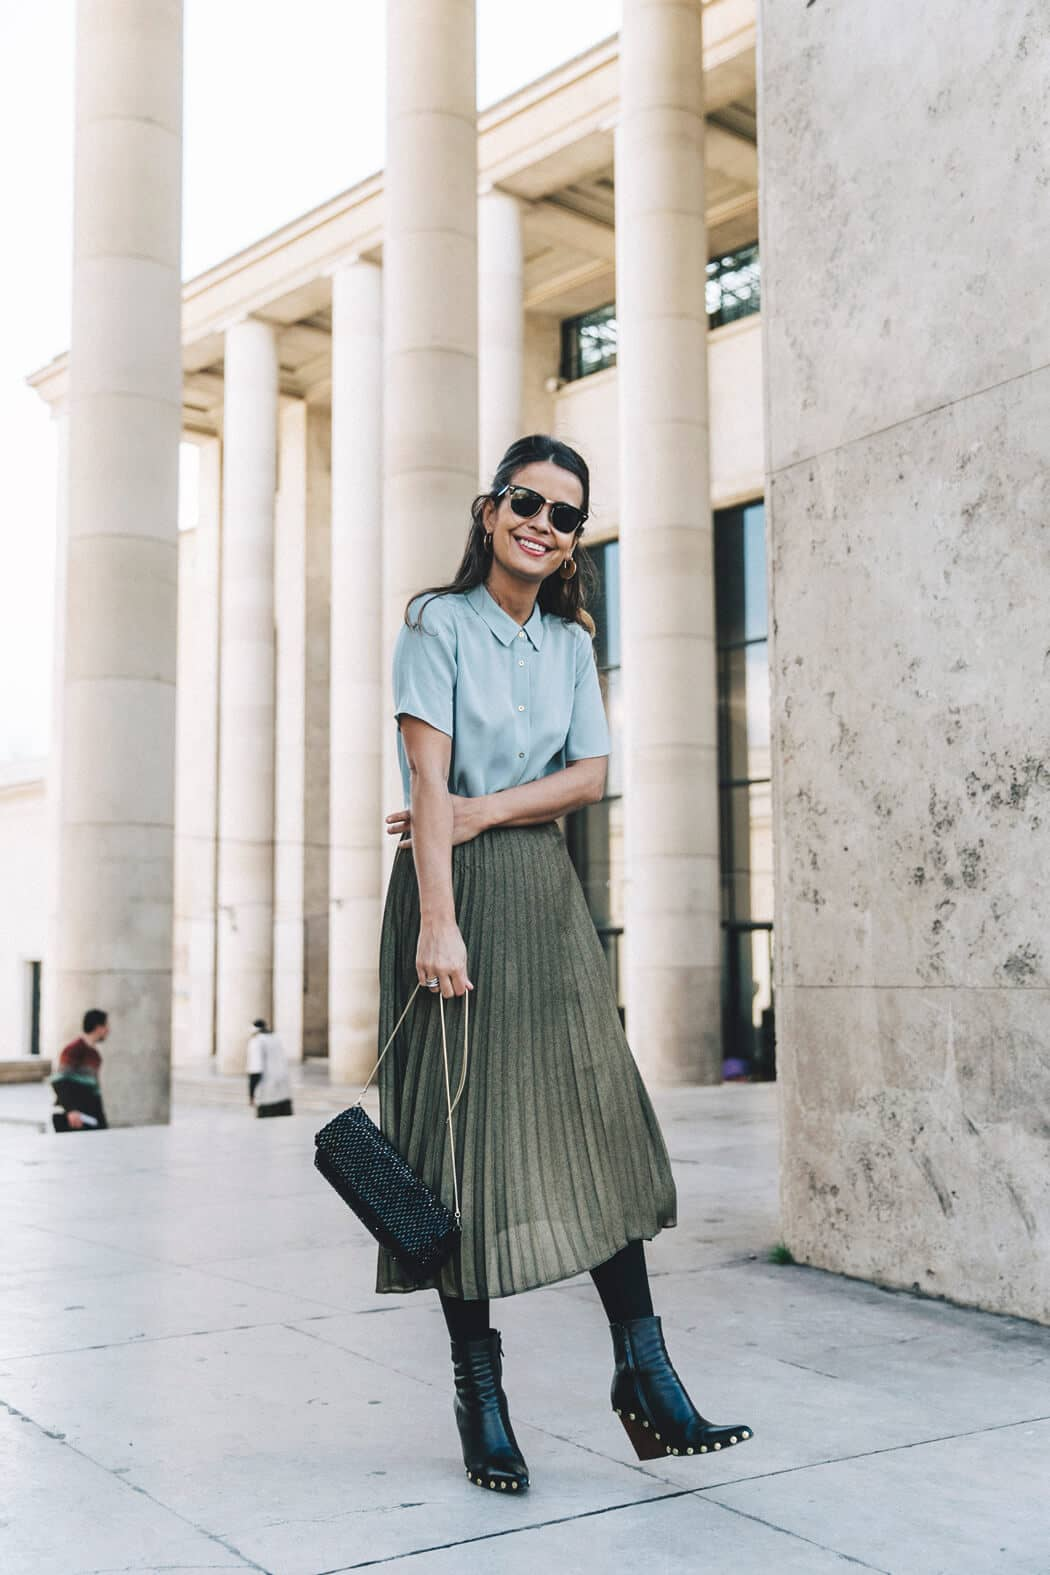 46 Spring Work Outfit Ideas That Will Brighten Your Day